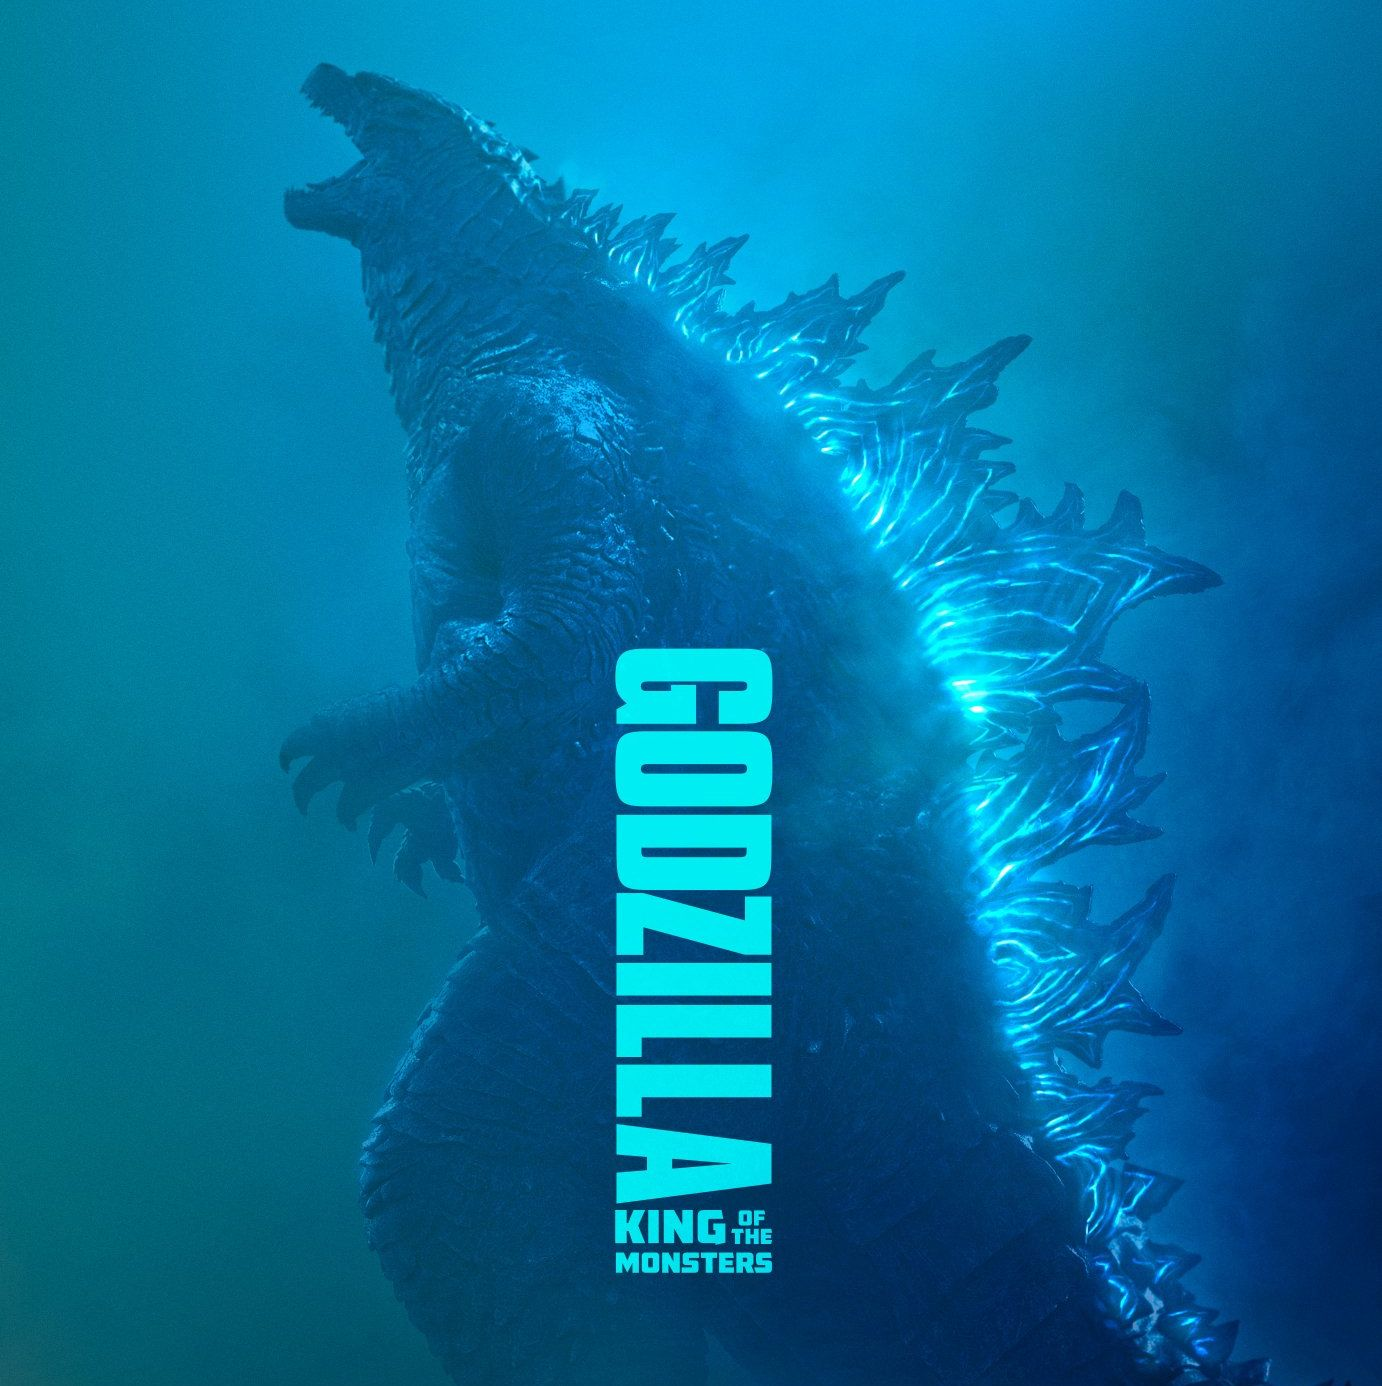 Godzilla: King of the Monsters early reactions praise the film as a monstrous hit